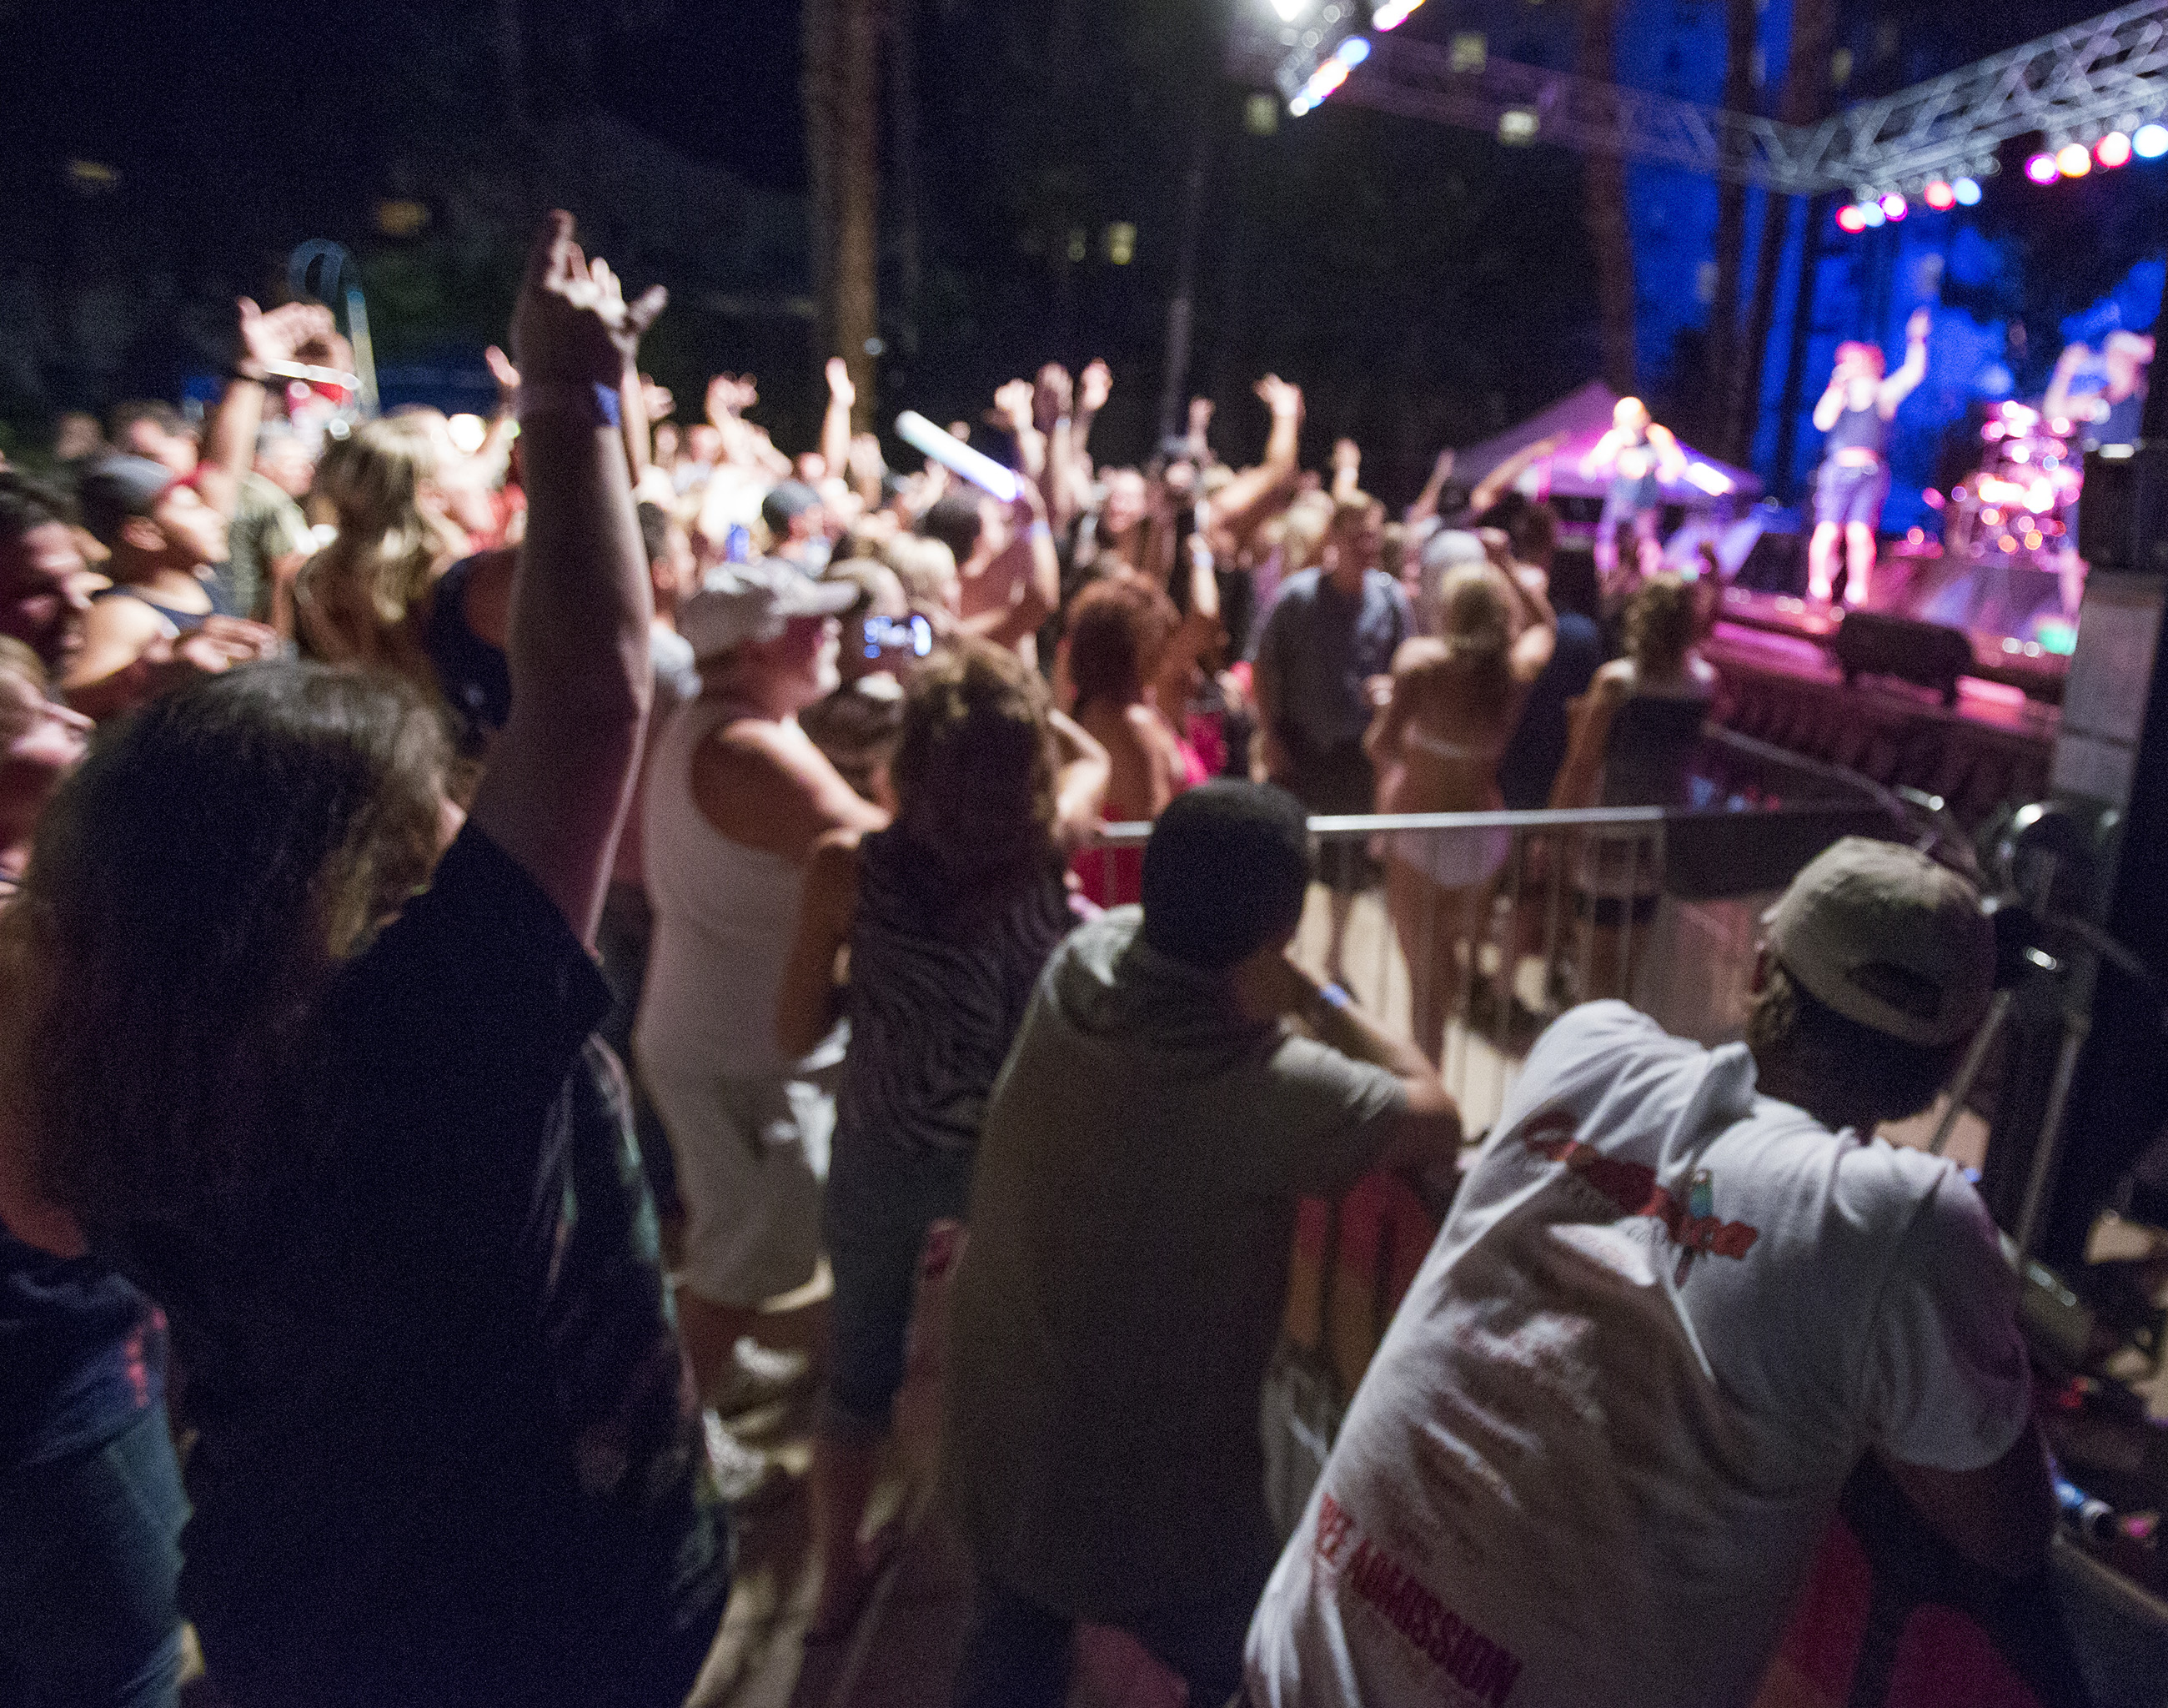 CasaPoolooza Free Concert Series Back to Rock 2016 Season